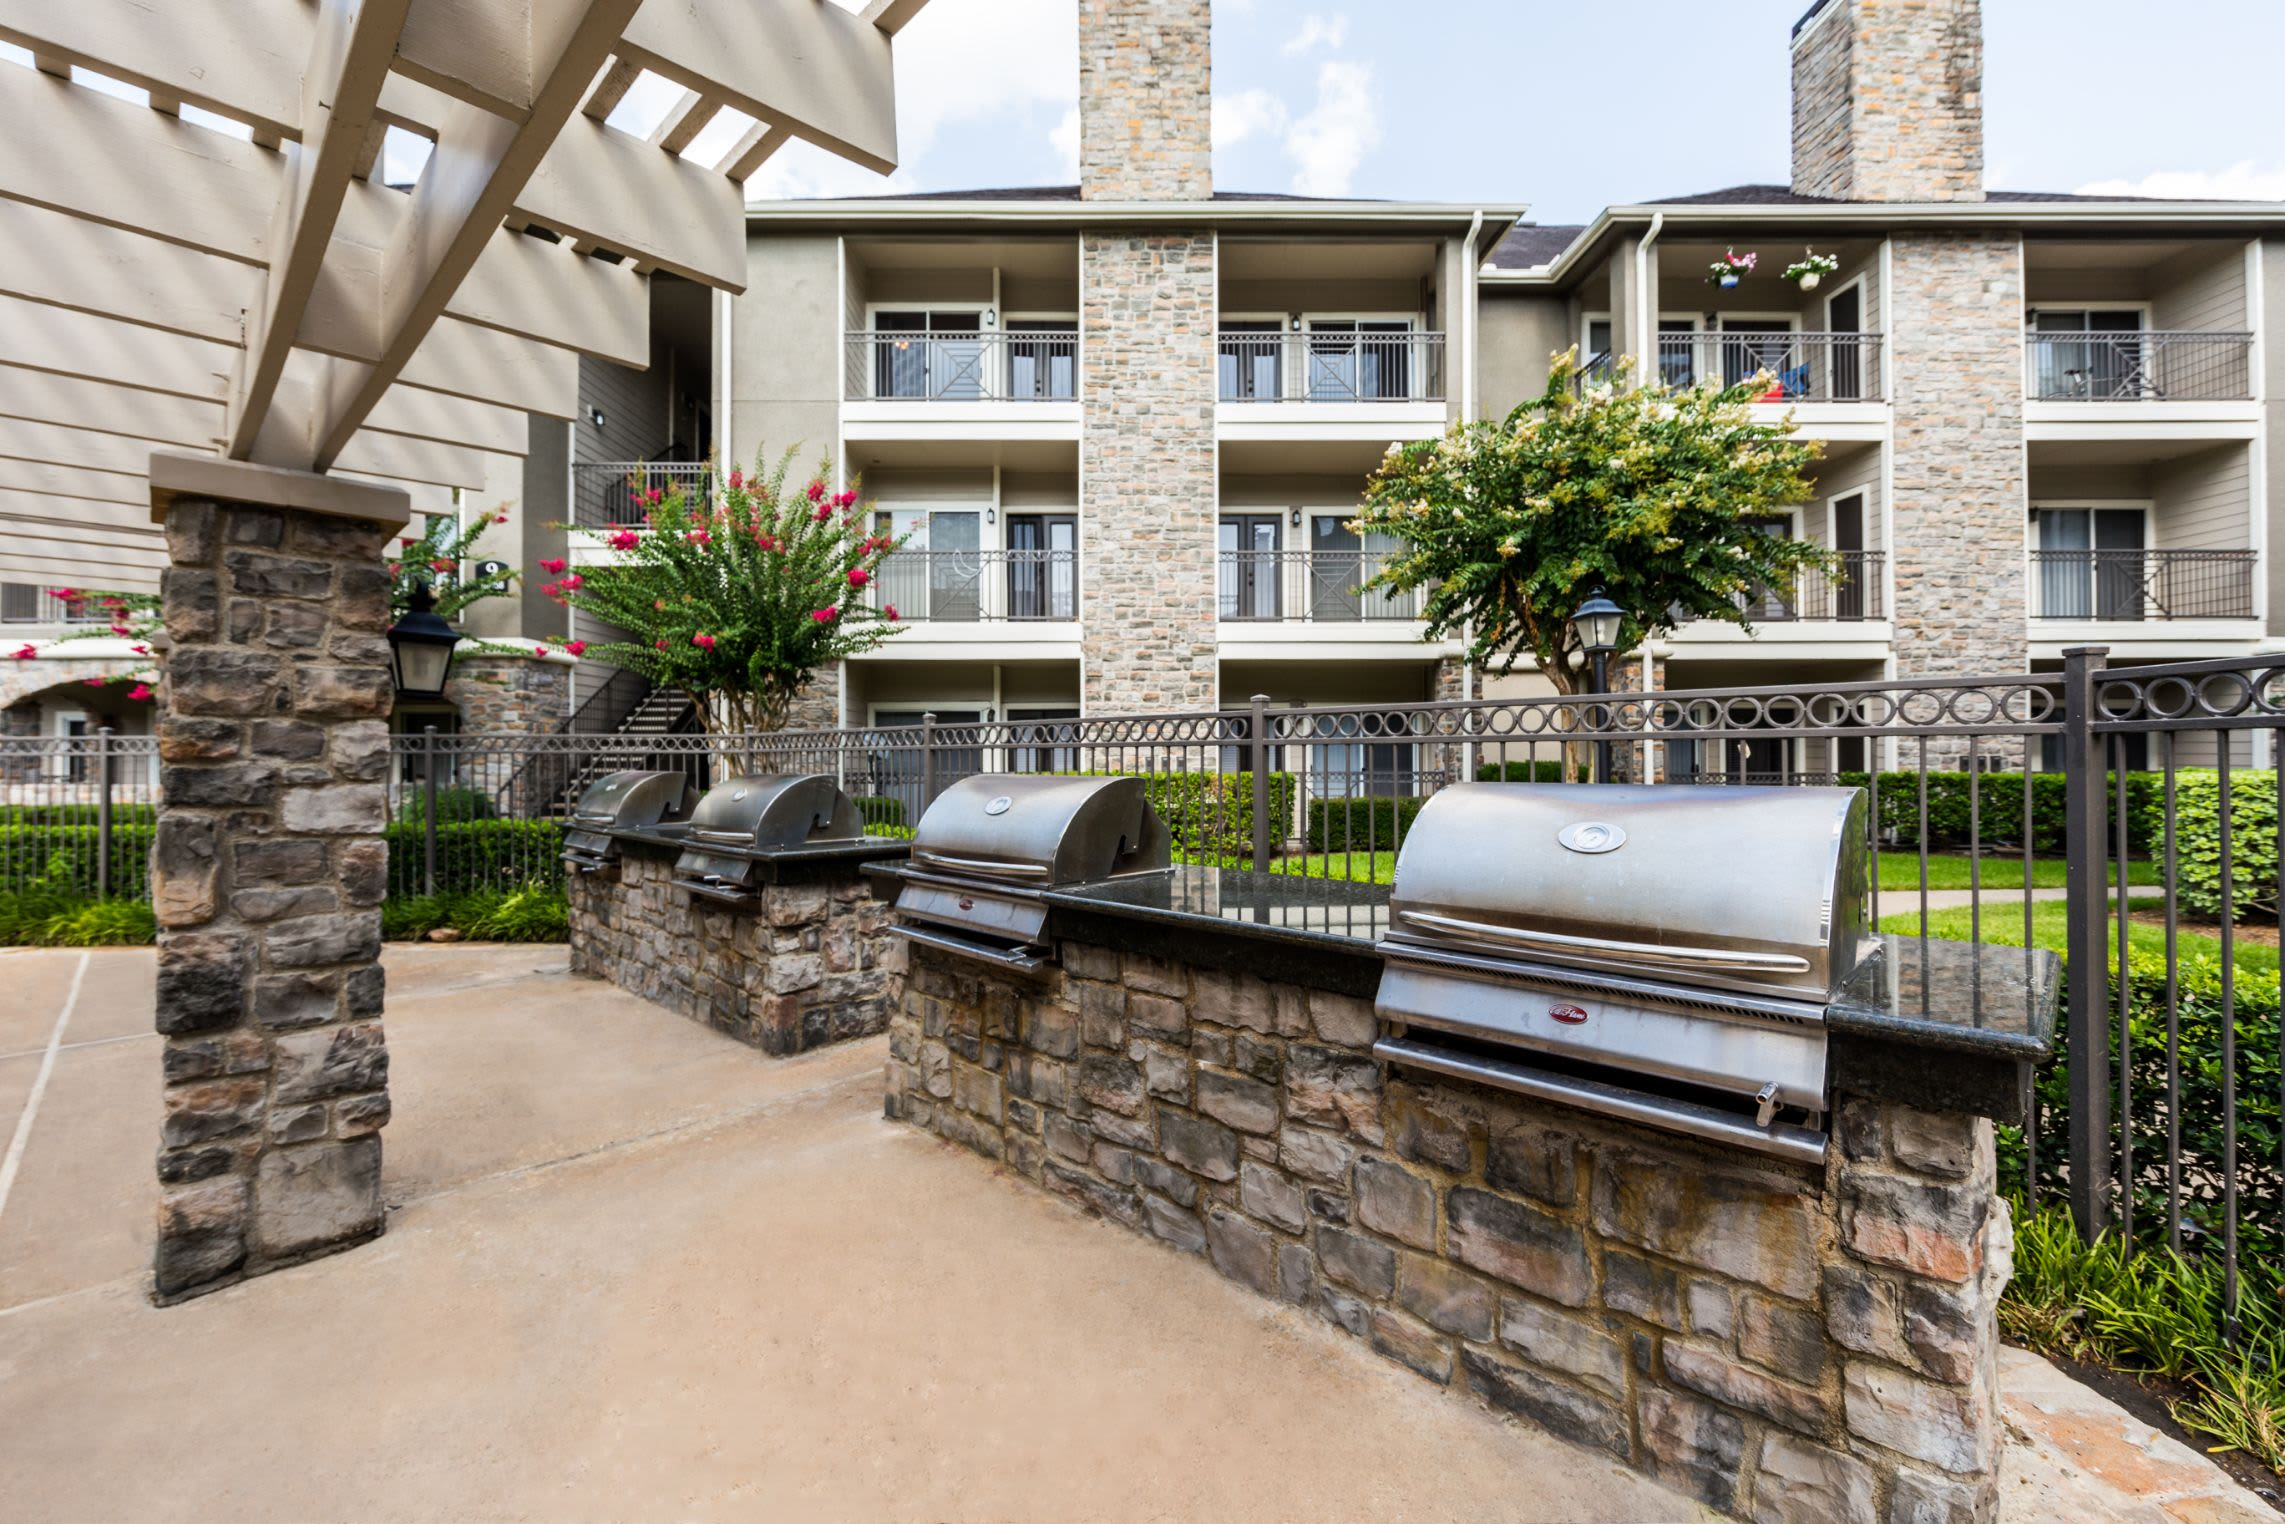 Outdoor grills for reidents at Marquis on Westheimer in Houston, Texas